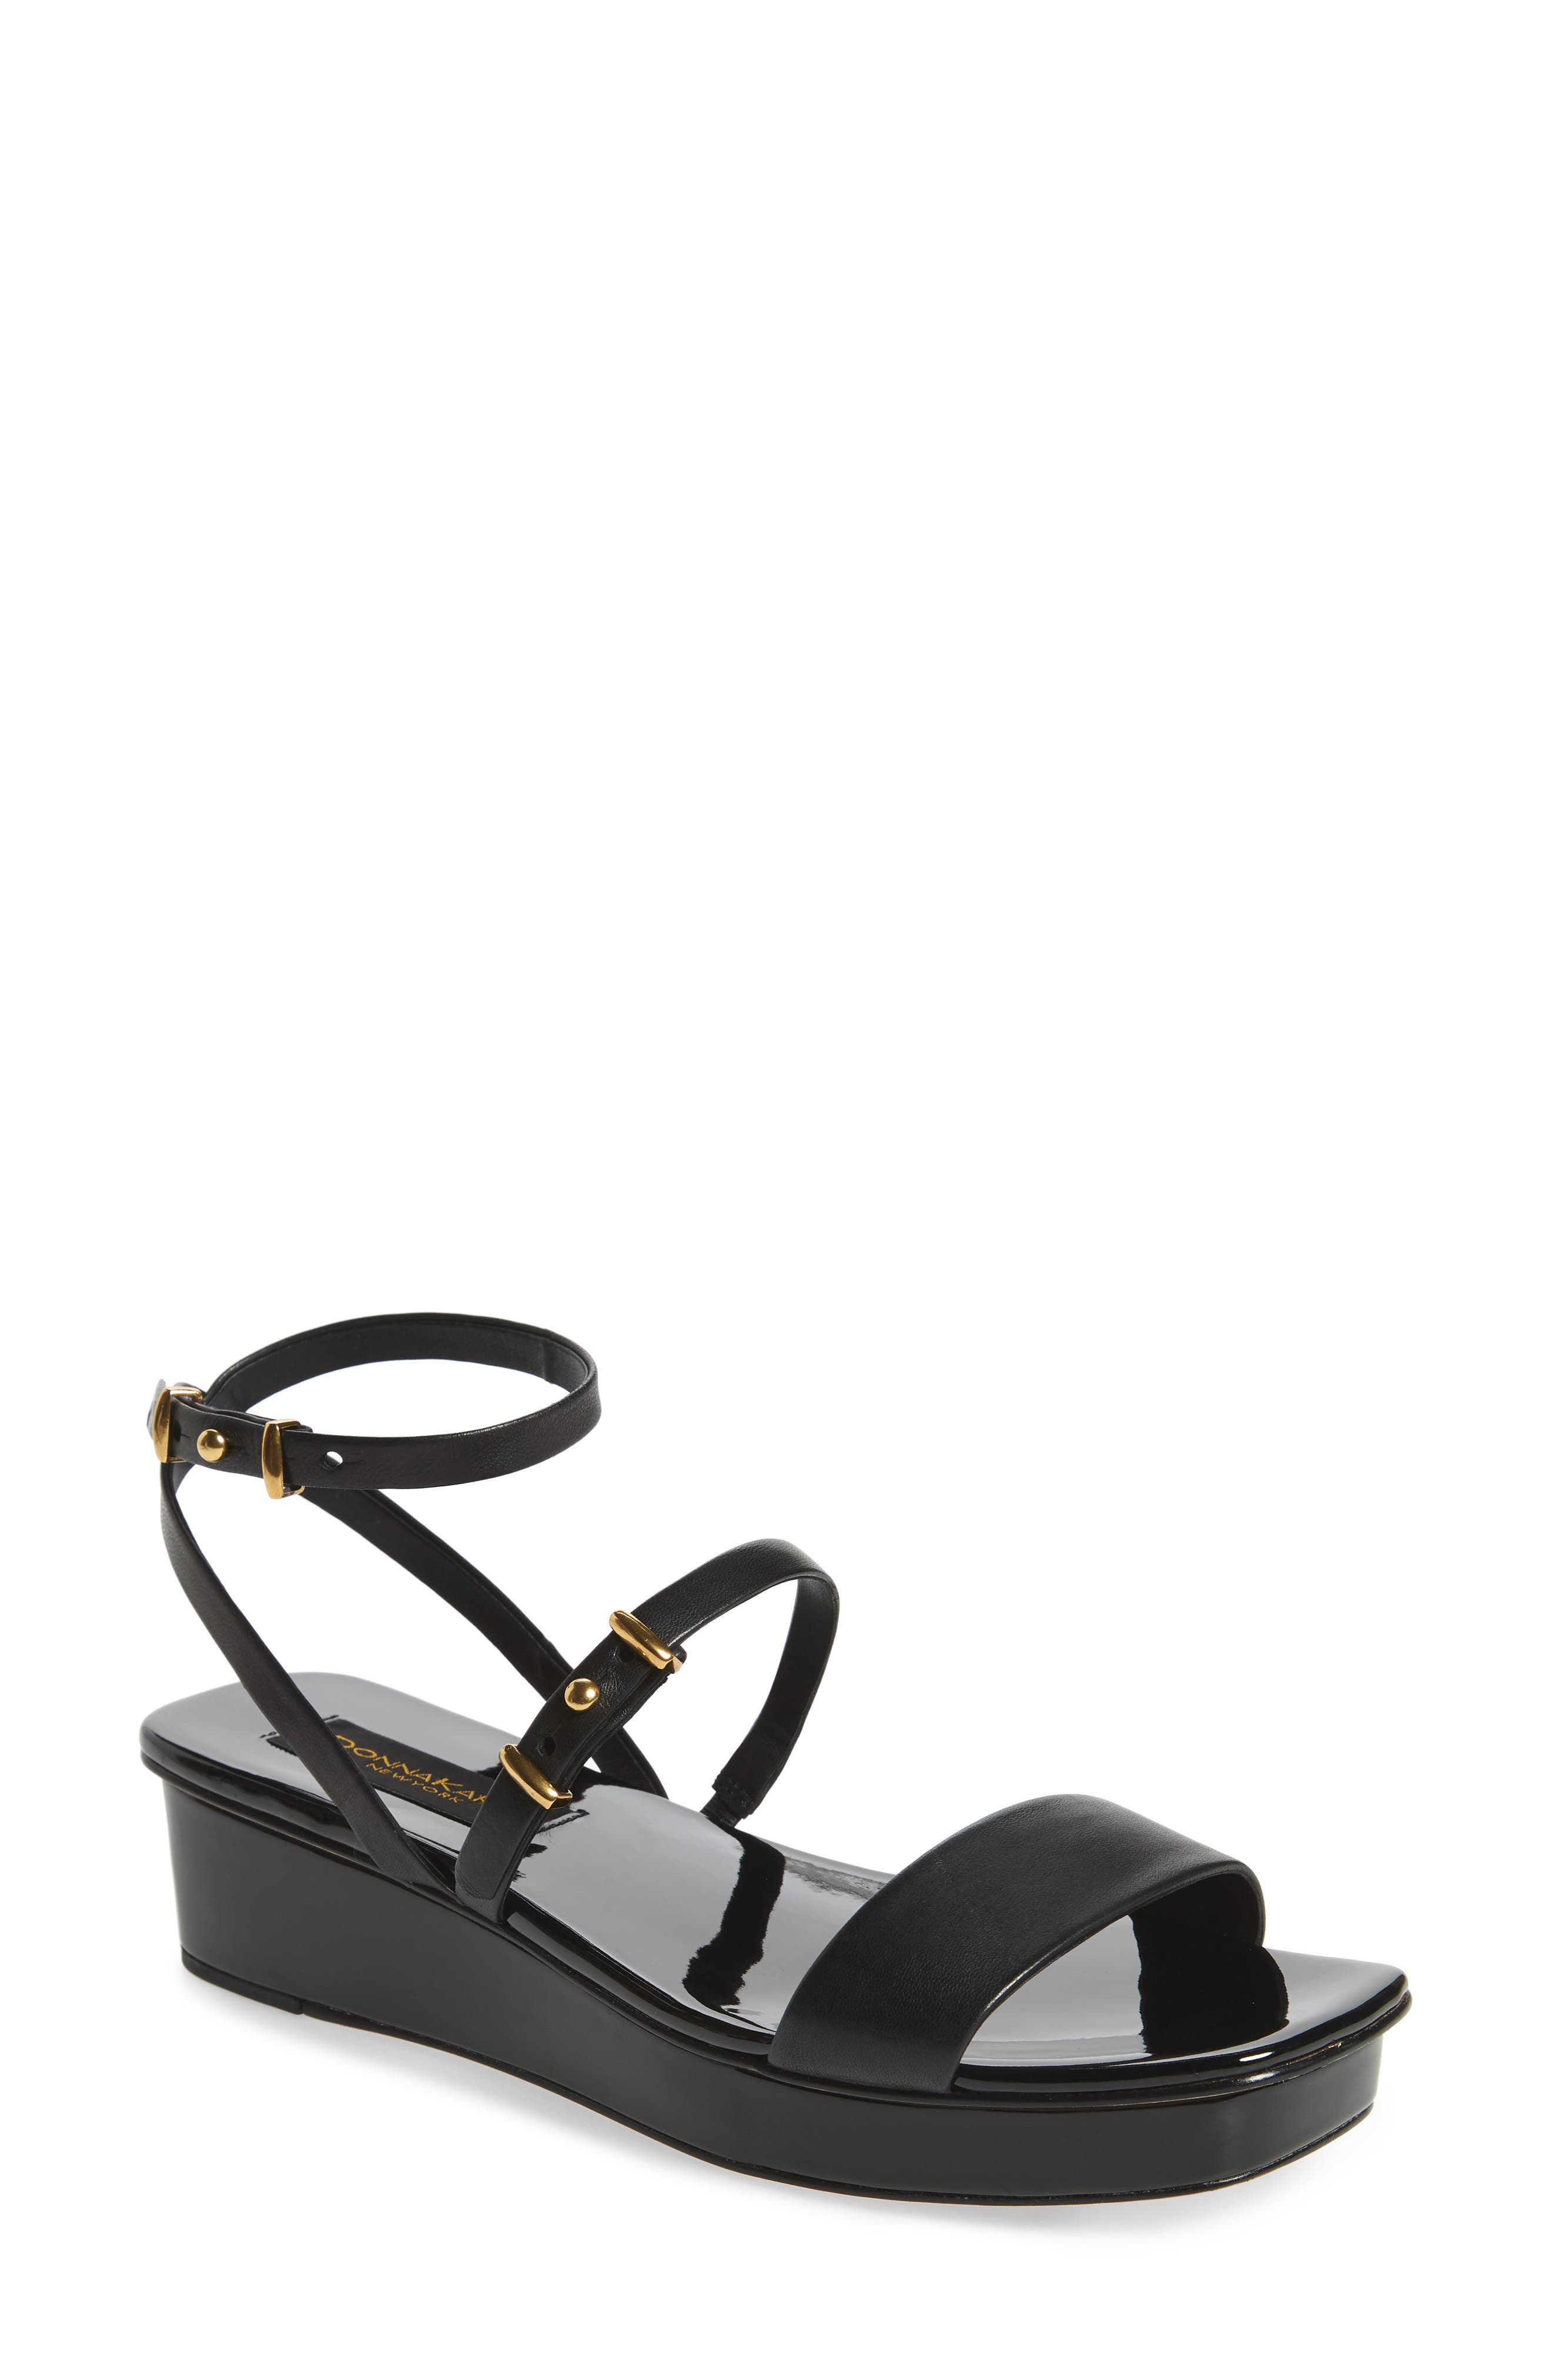 Ankle Strap Wedge Sandal,                         Main,                         color, 001